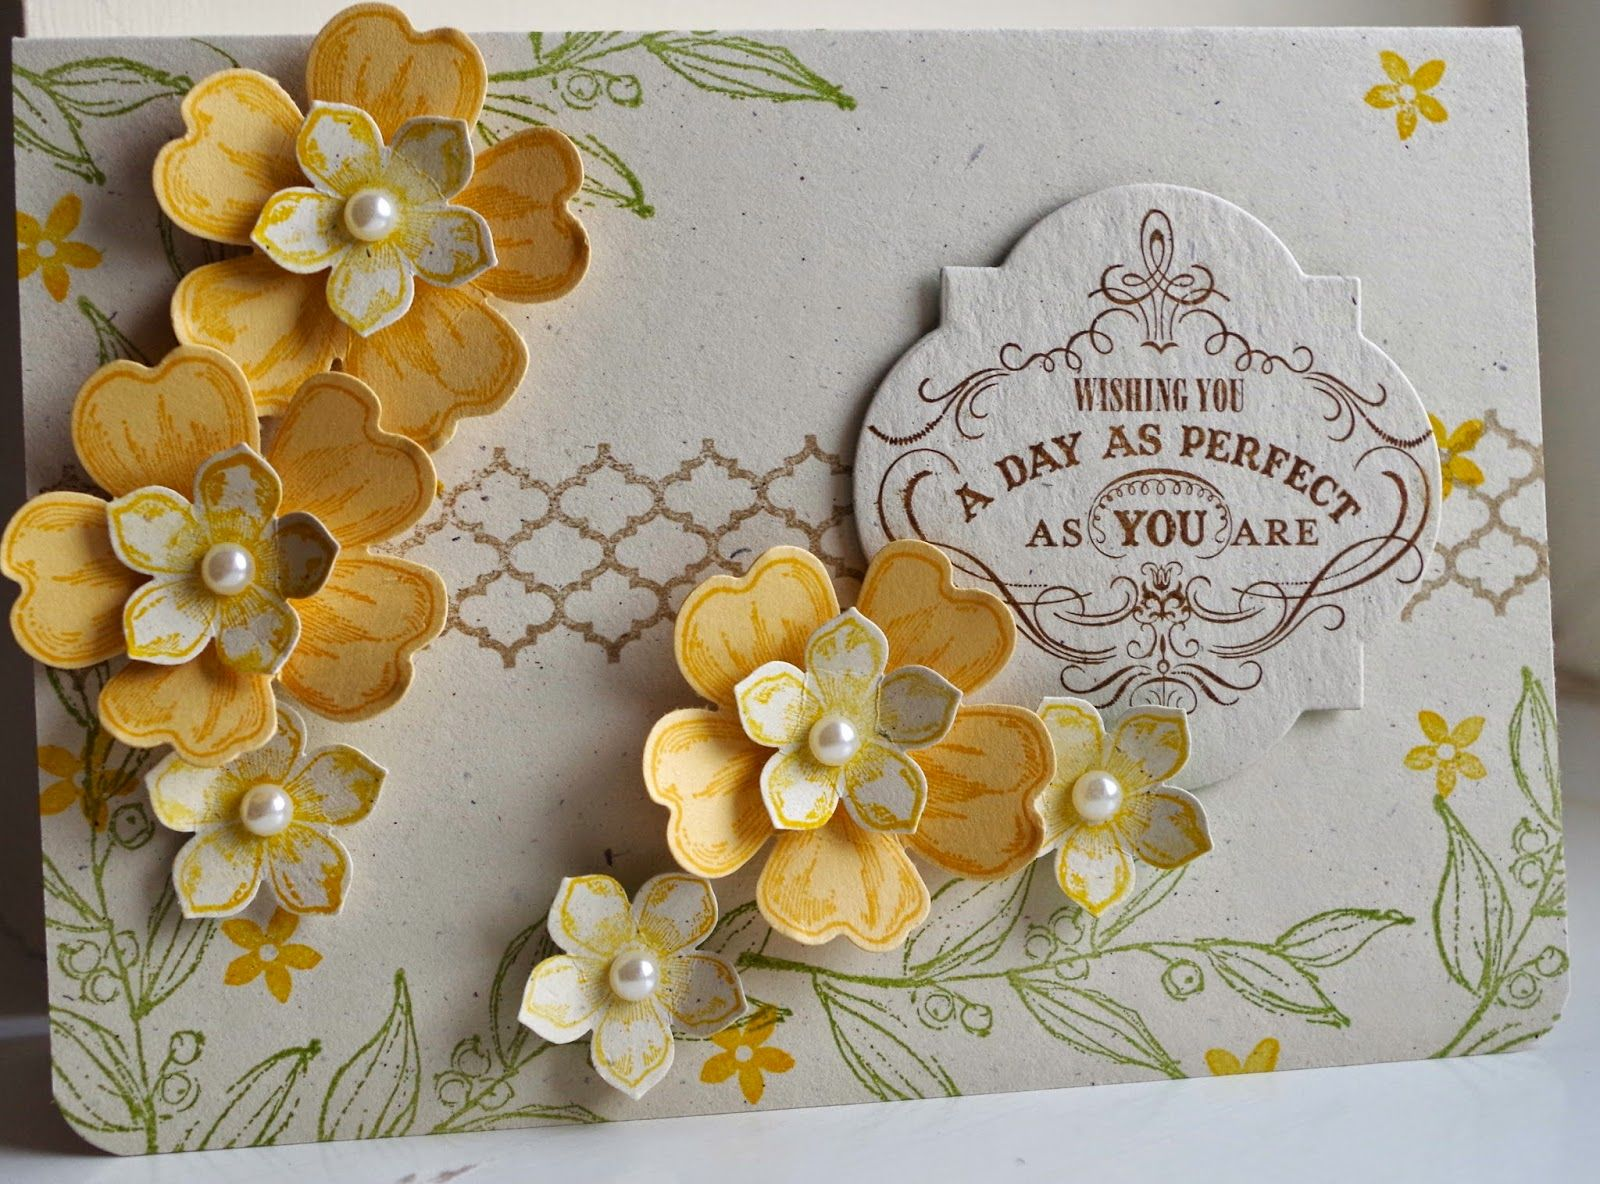 The Firefly Studio Thank You Cards Pinterest Fireflies And Cards